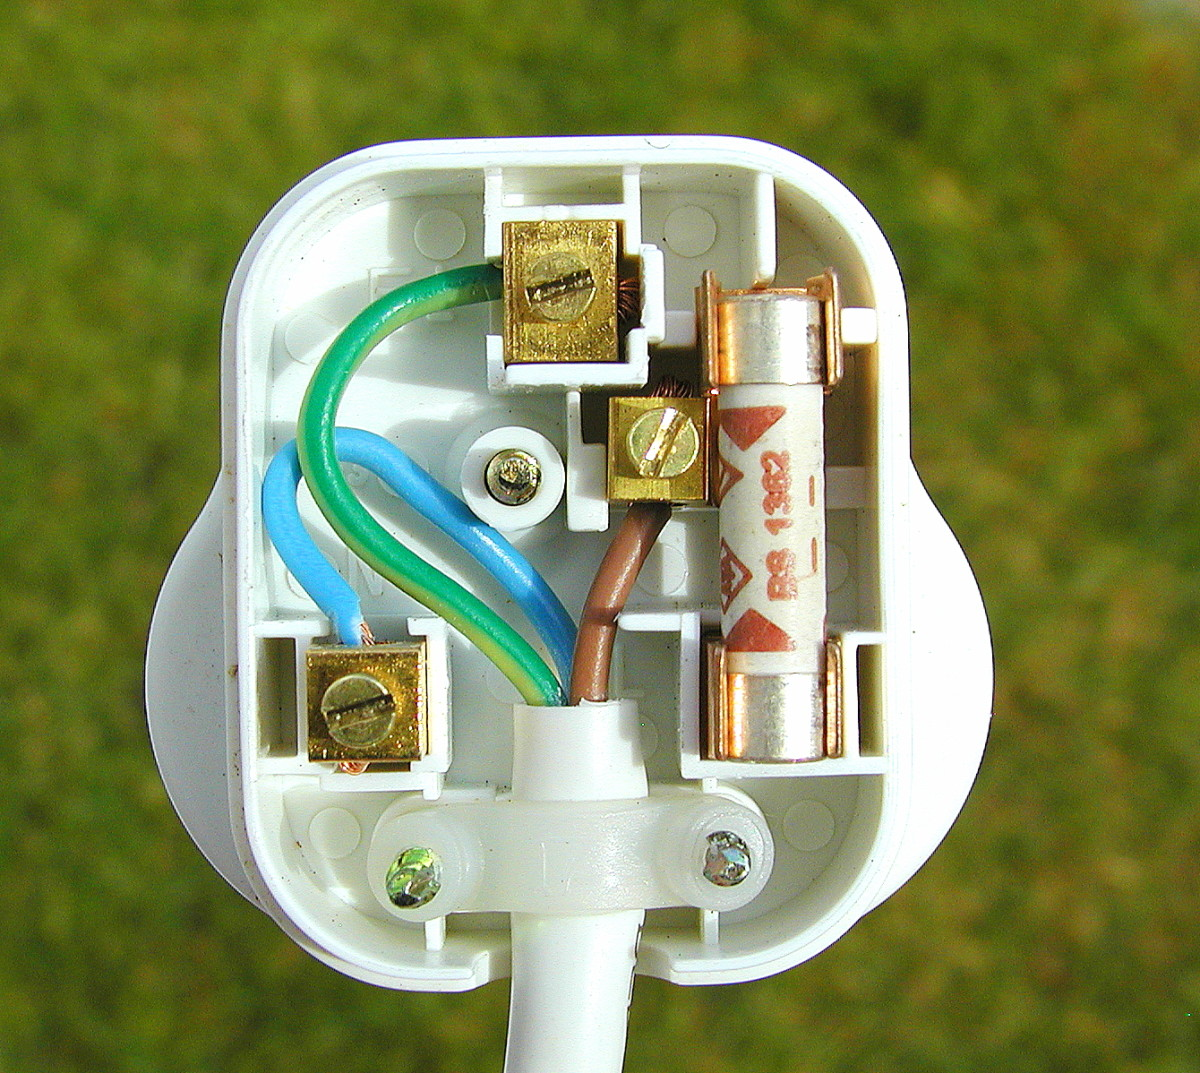 9 easy steps to wiring a plug correctly and safely dengarden Fused Electrical Plugs wiring a fused plug socket